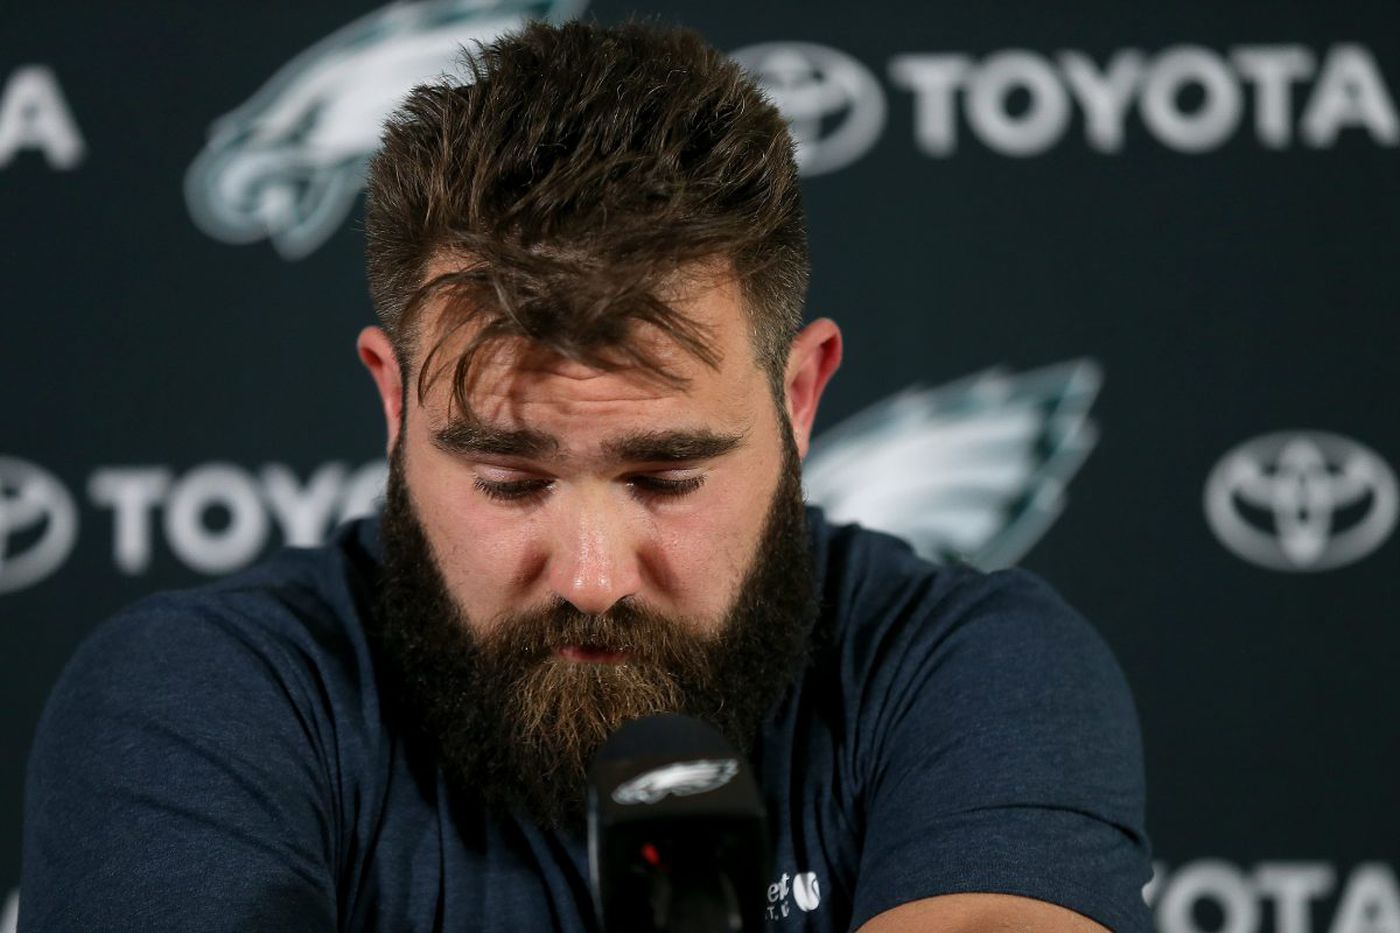 Eagles' Jason Kelce has gone from doubting himself to becoming a Philly folk hero   Mike Sielski